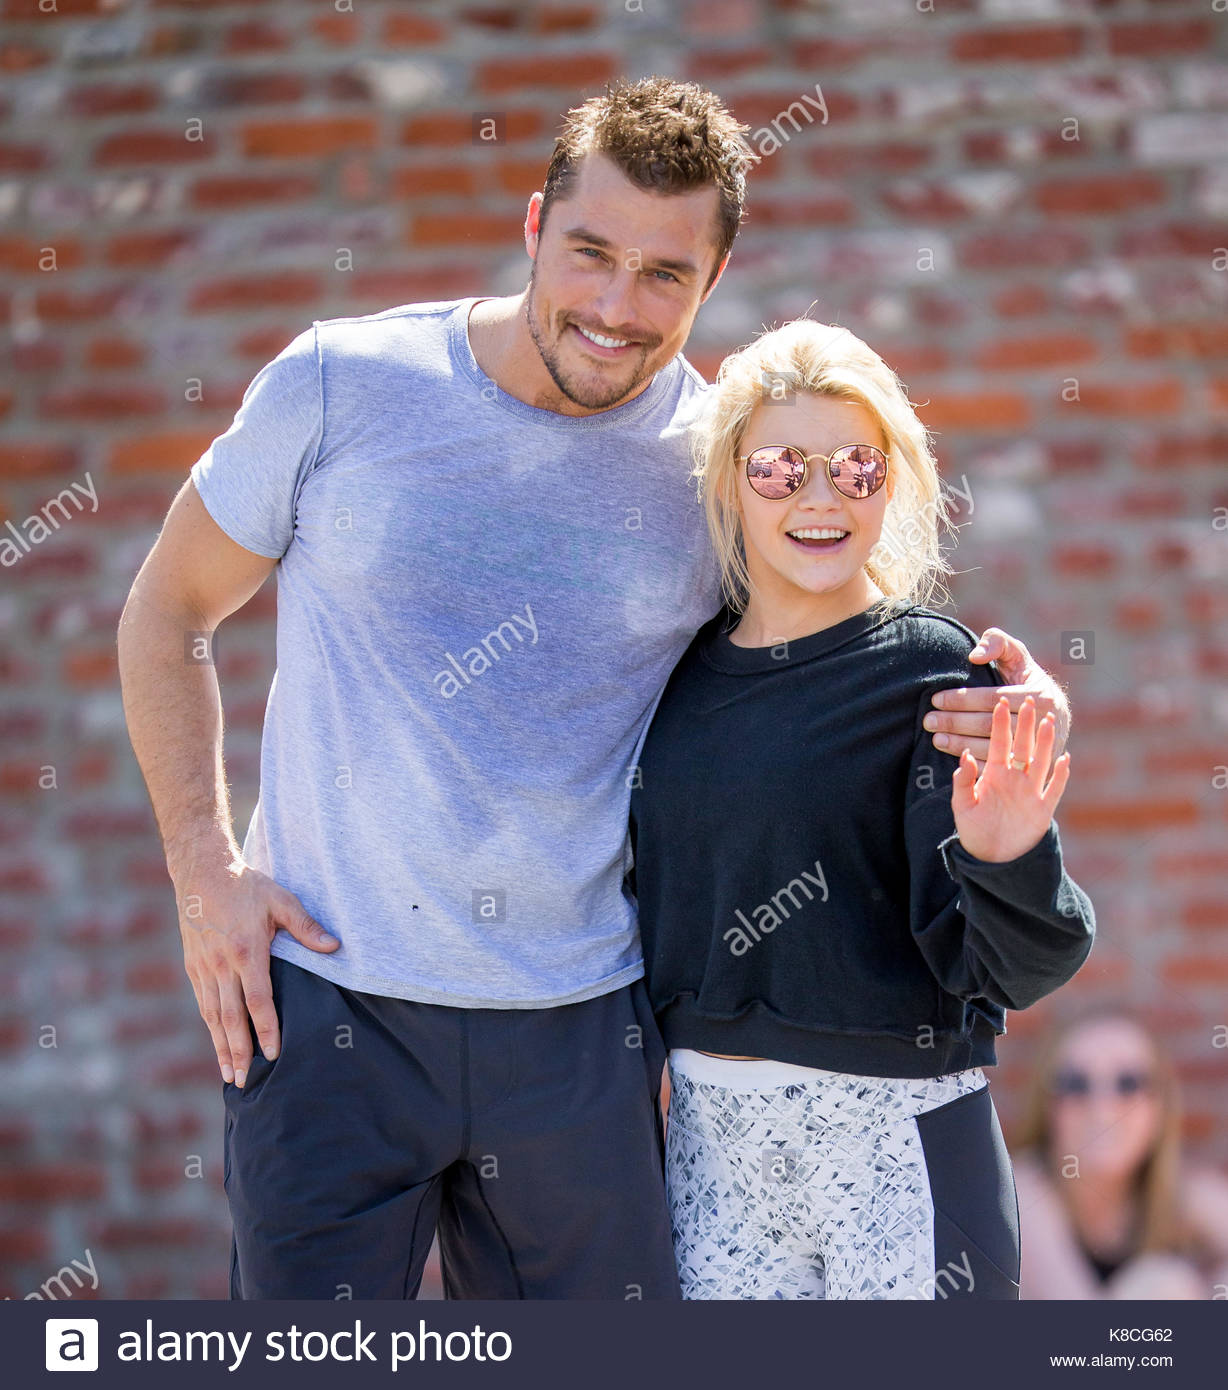 is chris dating whitney from dancing with the stars